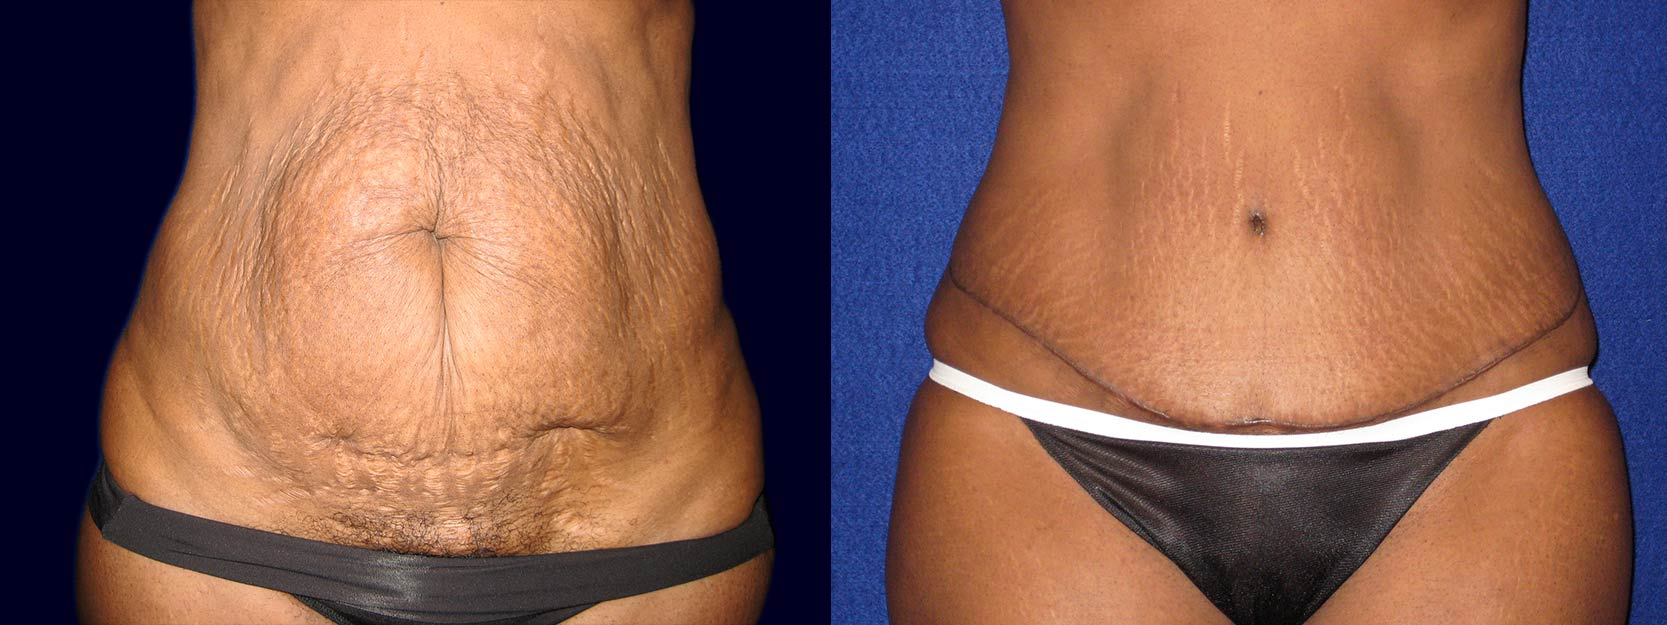 Frontal View - Tummy Tuck After Pregnancy